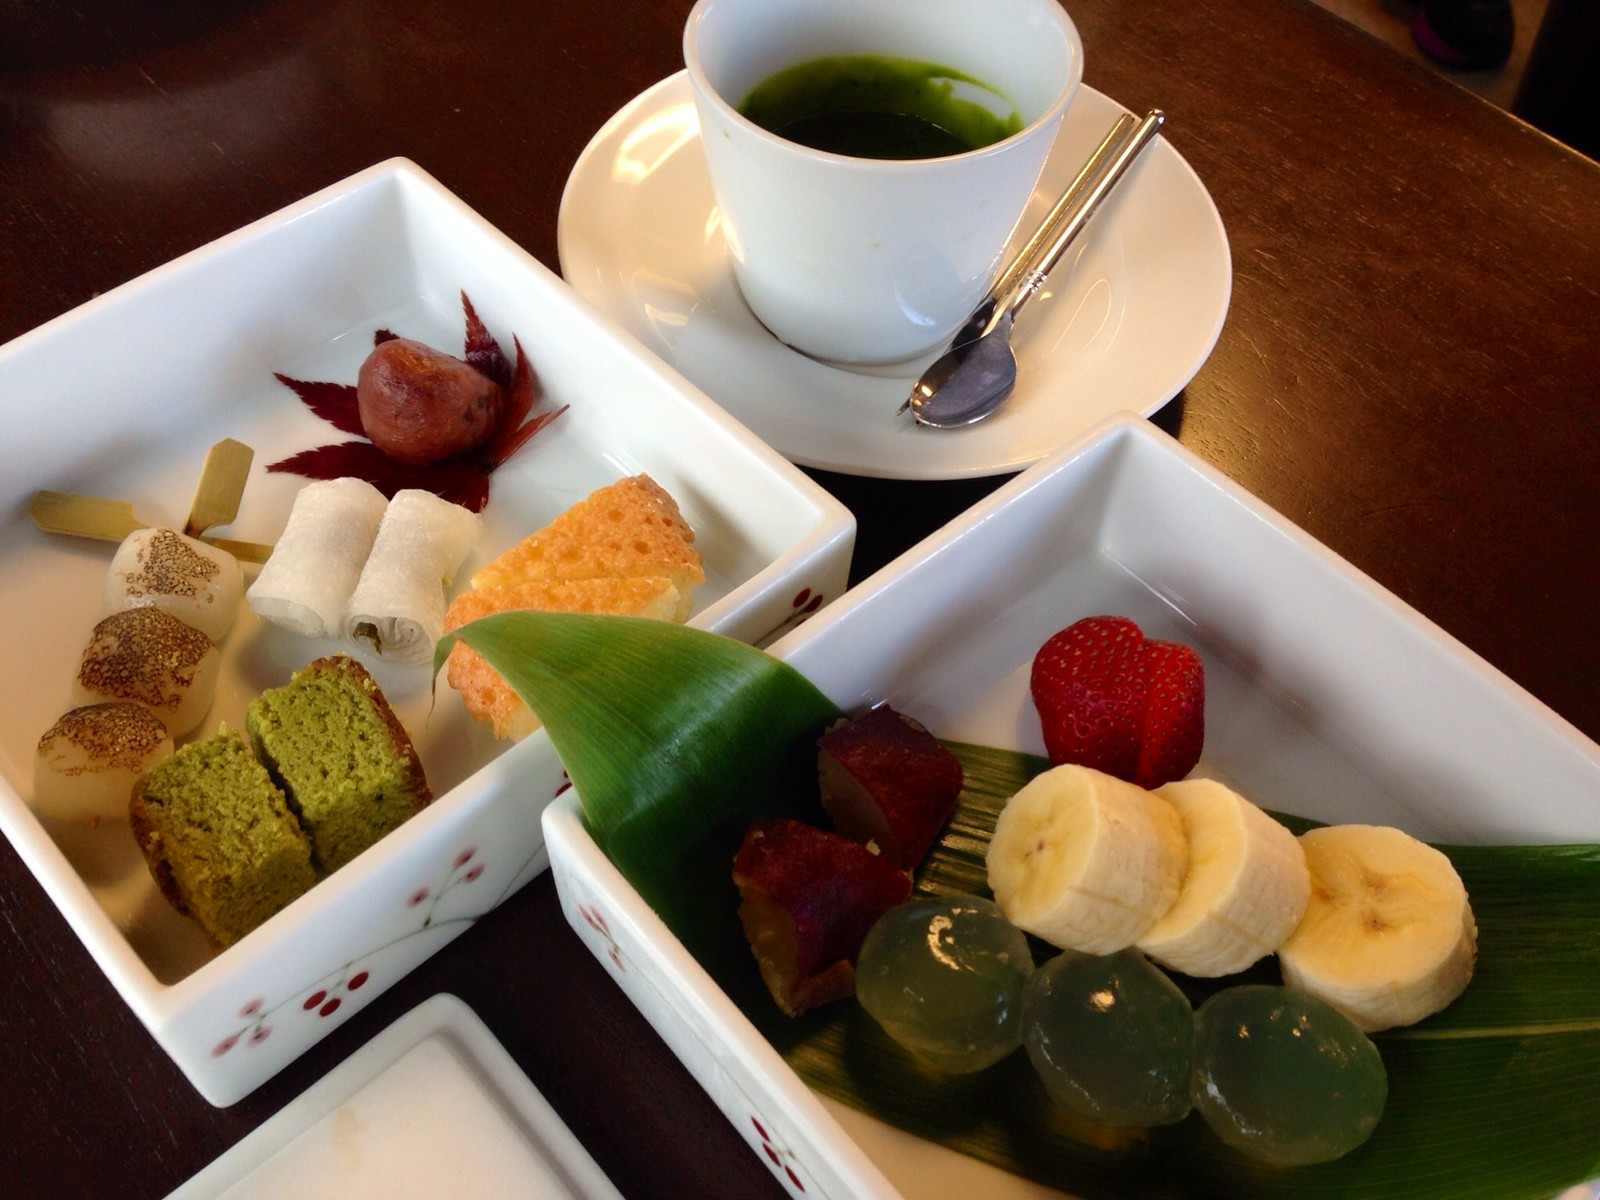 Jyubyuanseru Matcha Restaurants in Kyoto 2017